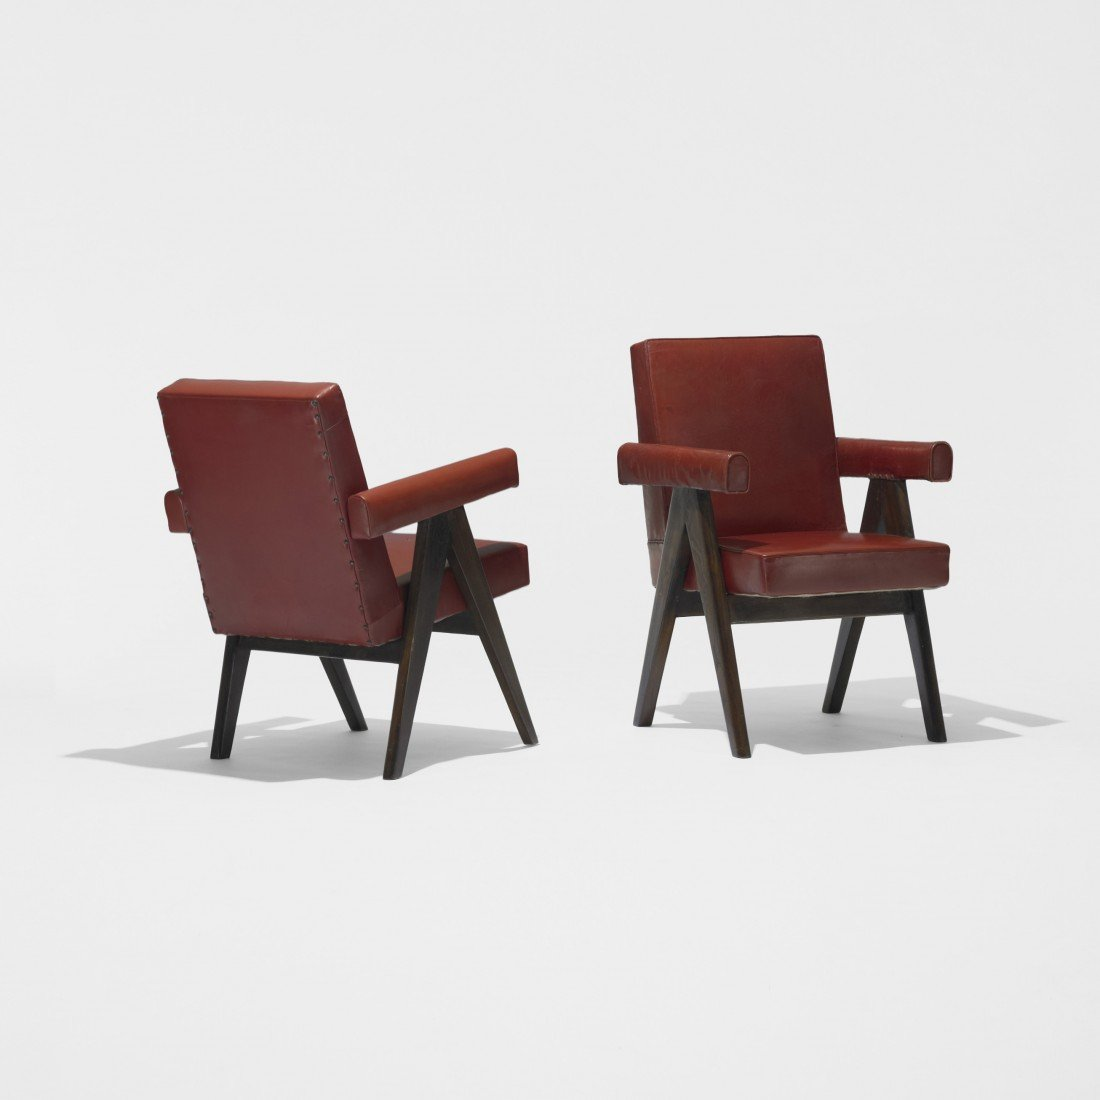 170: Pierre Jeanneret pair of Committe armchairs